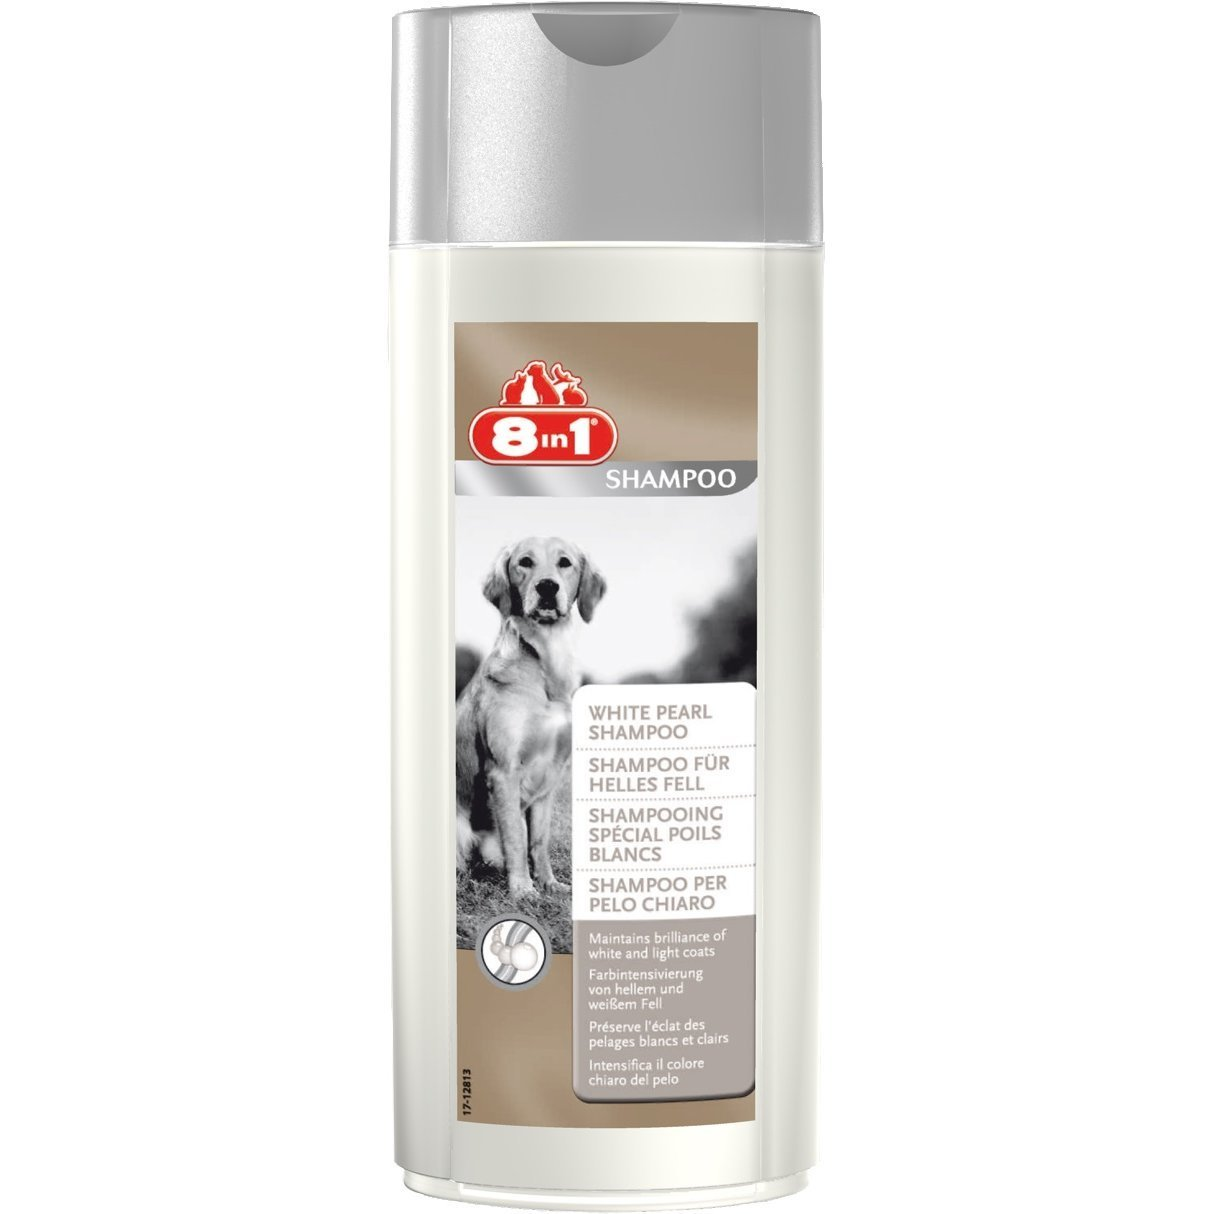 8in1 Hundeshampoo für helles Fell, 250 ml